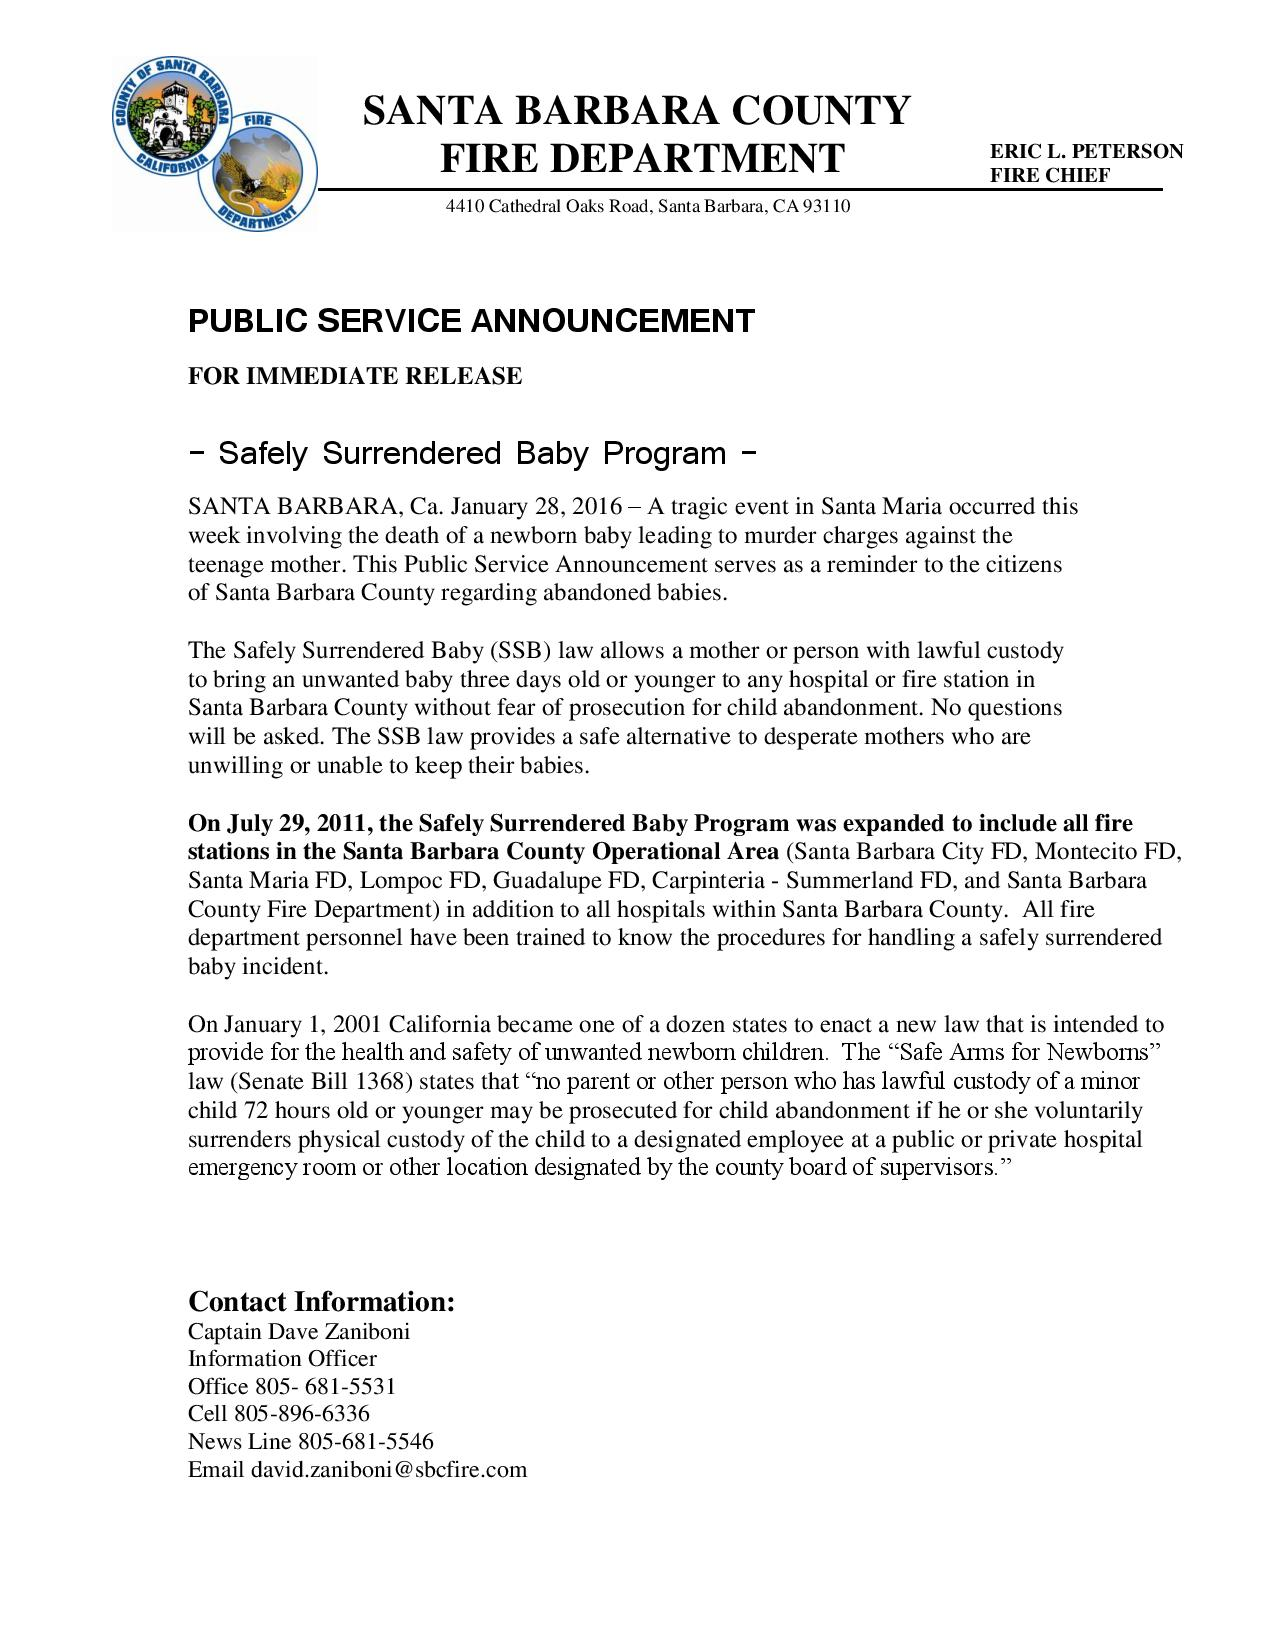 Safely Surrendered Baby Program-pg1